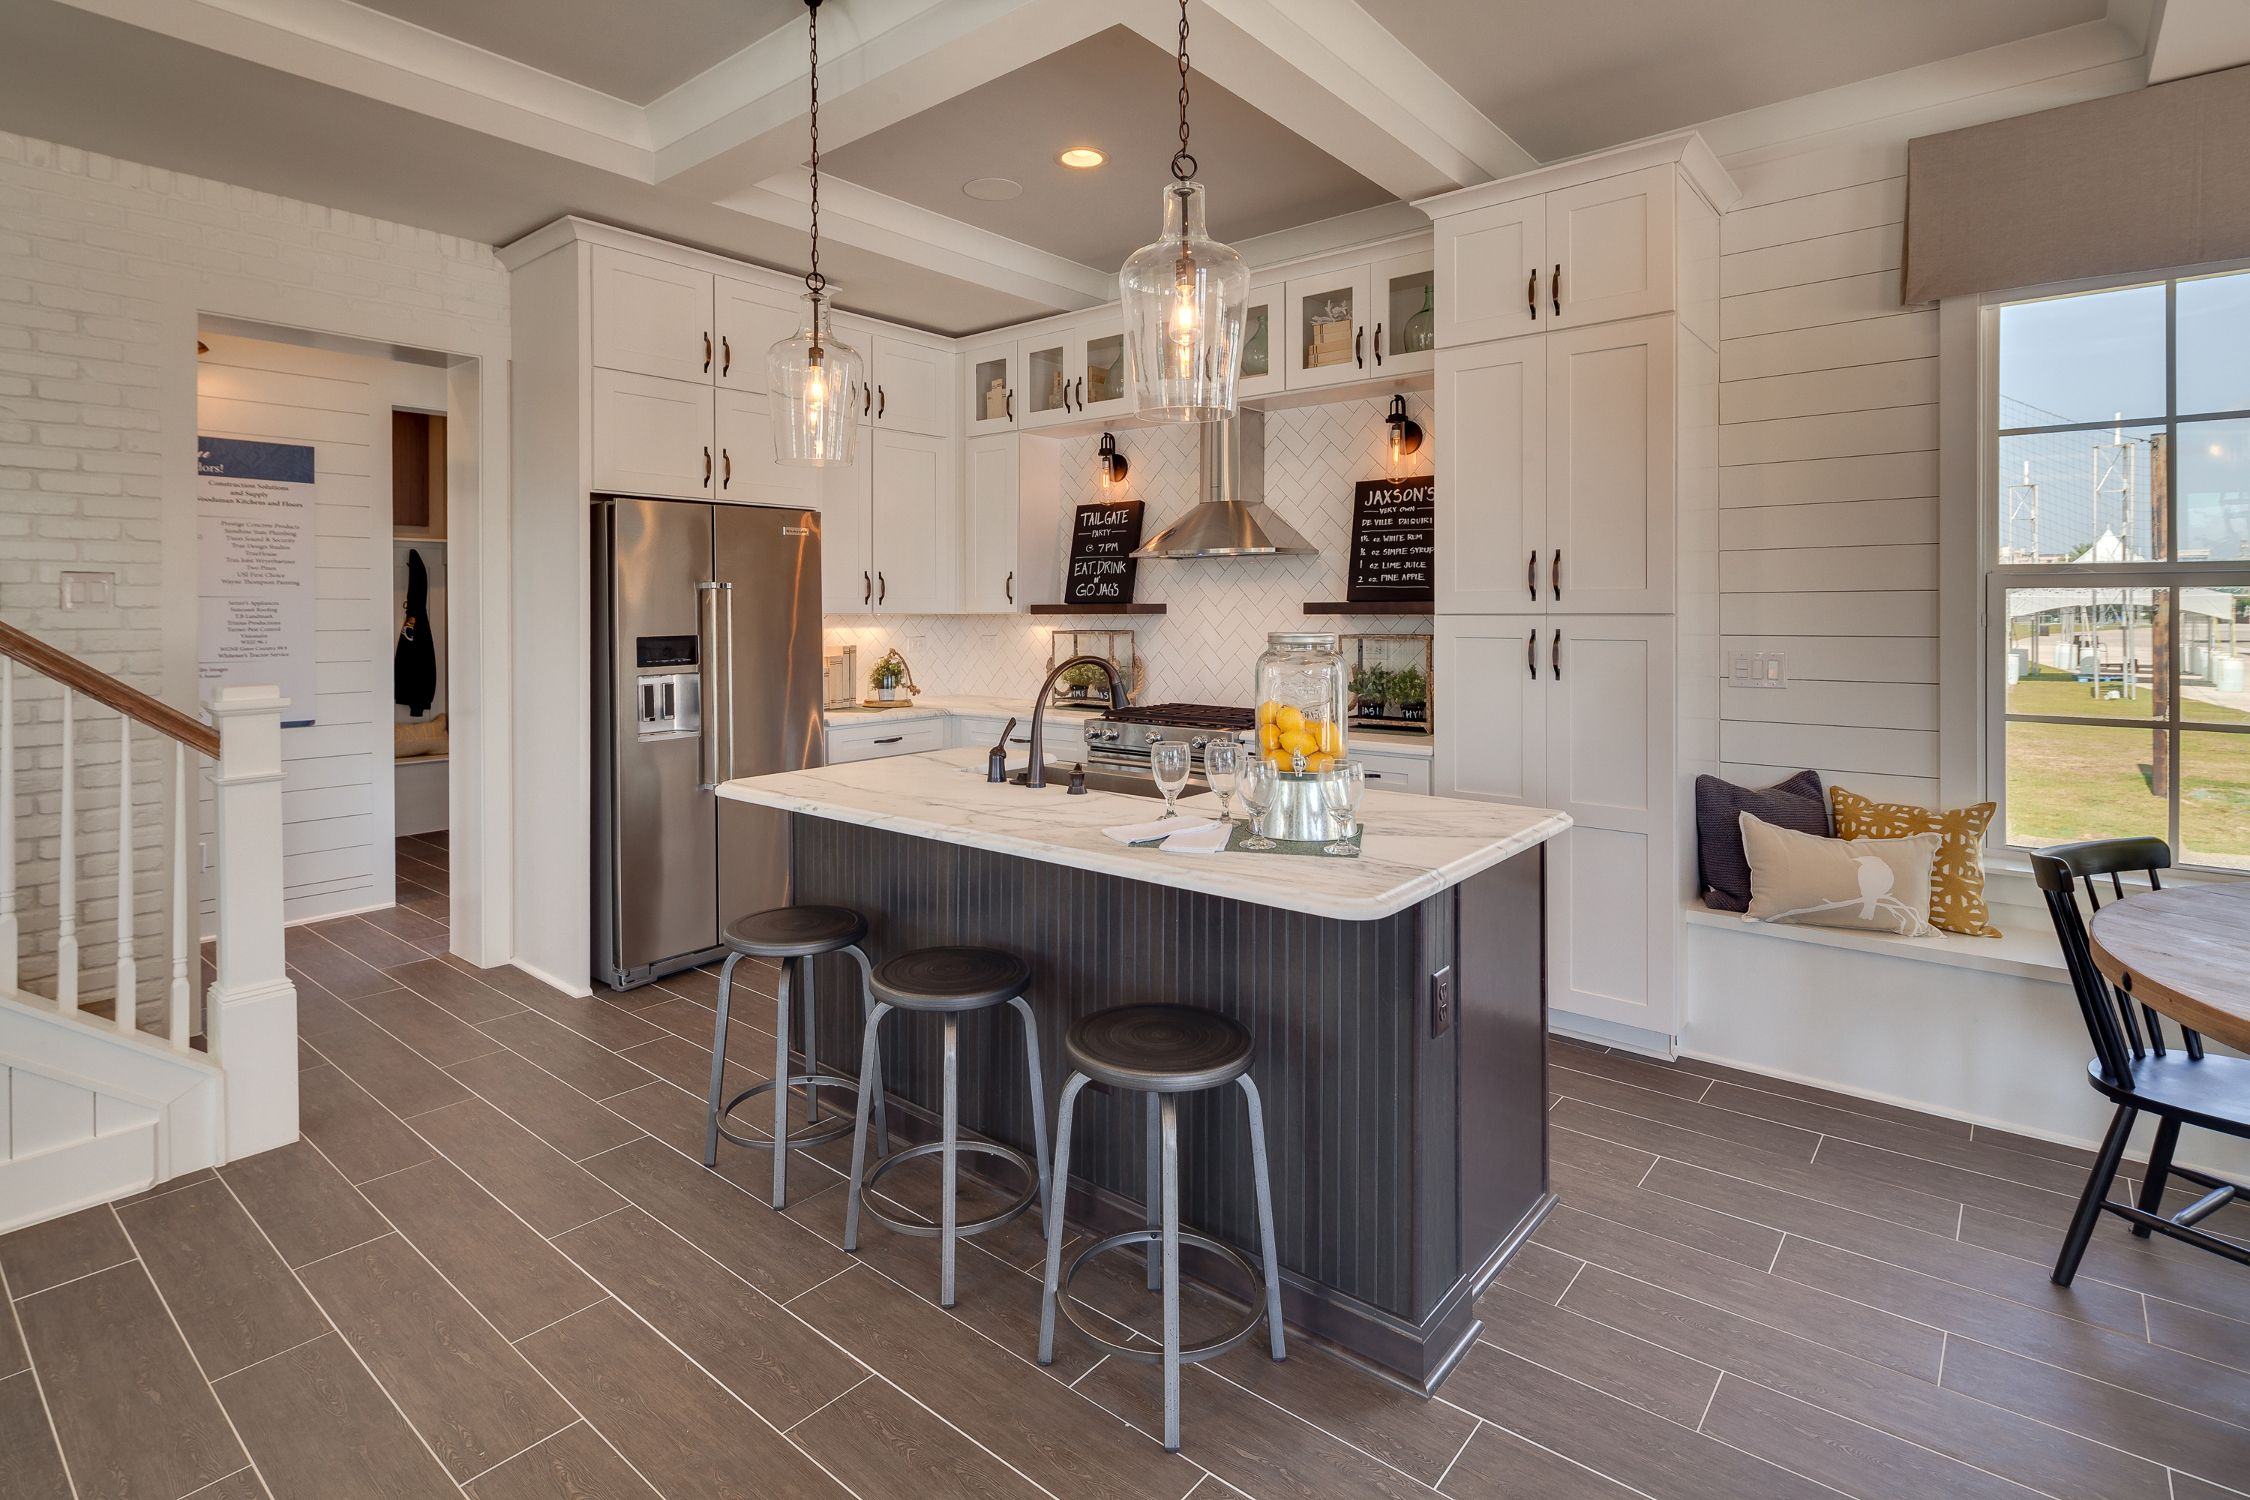 TileTuesday features a FABULOUS kitchen design and installation by ...